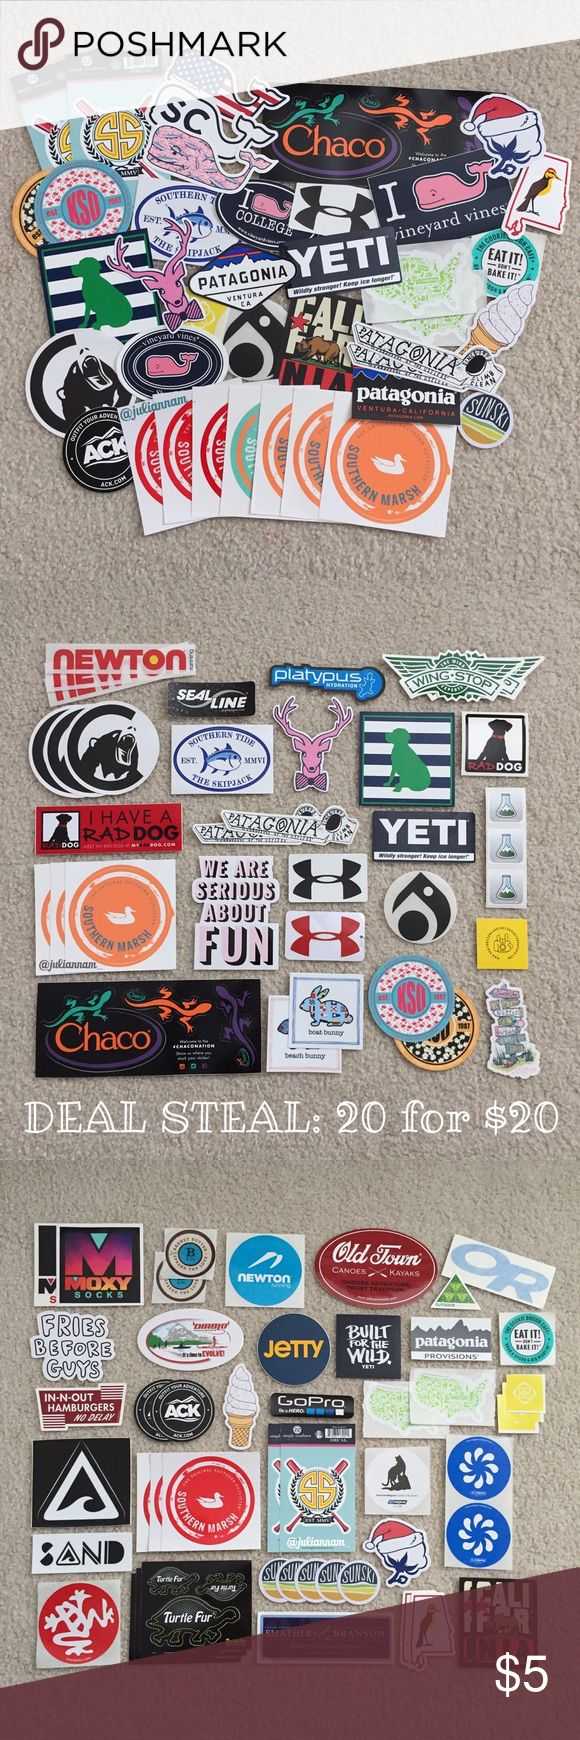 PREPPY STICKER BUNDLE (PRICE IS FOR 1 STICKER) SOLD OUT: Patagonia, Lokai, in n out, yeti, fries b4 guys  Preppy stickers like Vineyard Vines & Chaco perfect for waterbottles, cars, laptops, etc.   SOME STICKERS MAY COST $1 MORE BC OF BRAND  1 for $4 2 for $6 3 for $7 4 for $8 5 for $9 6 for $10 and so on  20 FOR $20 DEAL (LIMITED TIME)  STICKERS IN THE 2-4 PICTURES ARE AVAILABLE. FIRST PICTURE AVAILABILITY VARIES!  Comment stickers you want, & I'll make the listing! (:  Can buy cheaper on…